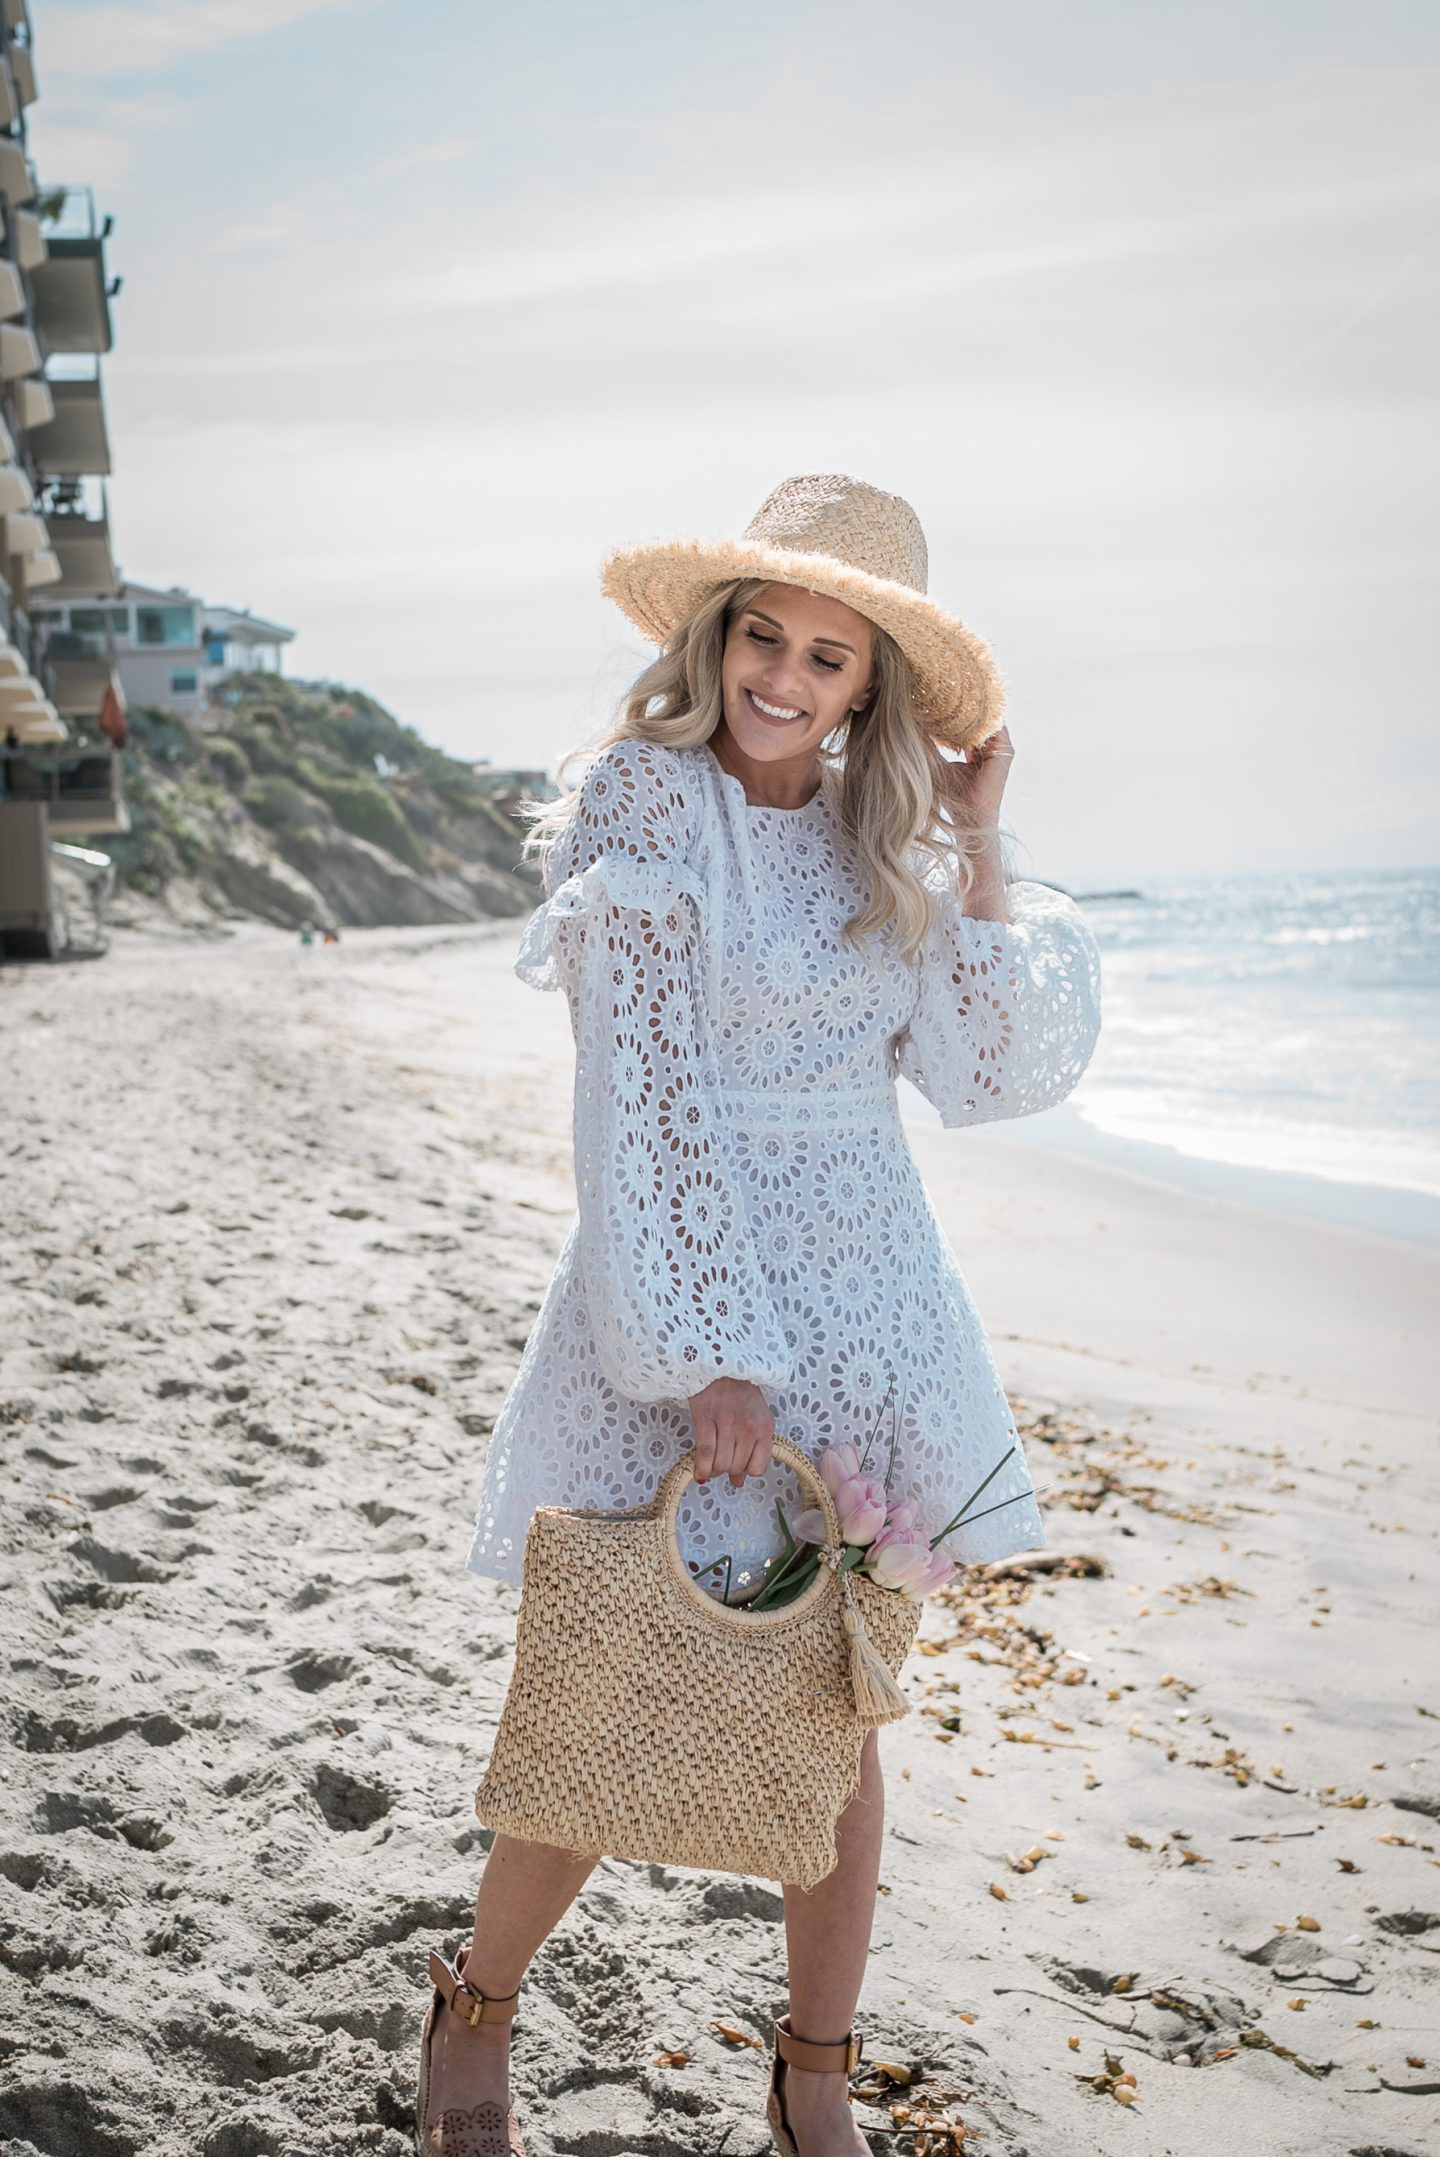 The Best Beach Cover Ups for this Season by popular Orange County fashion blogger, Dress Me Blonde